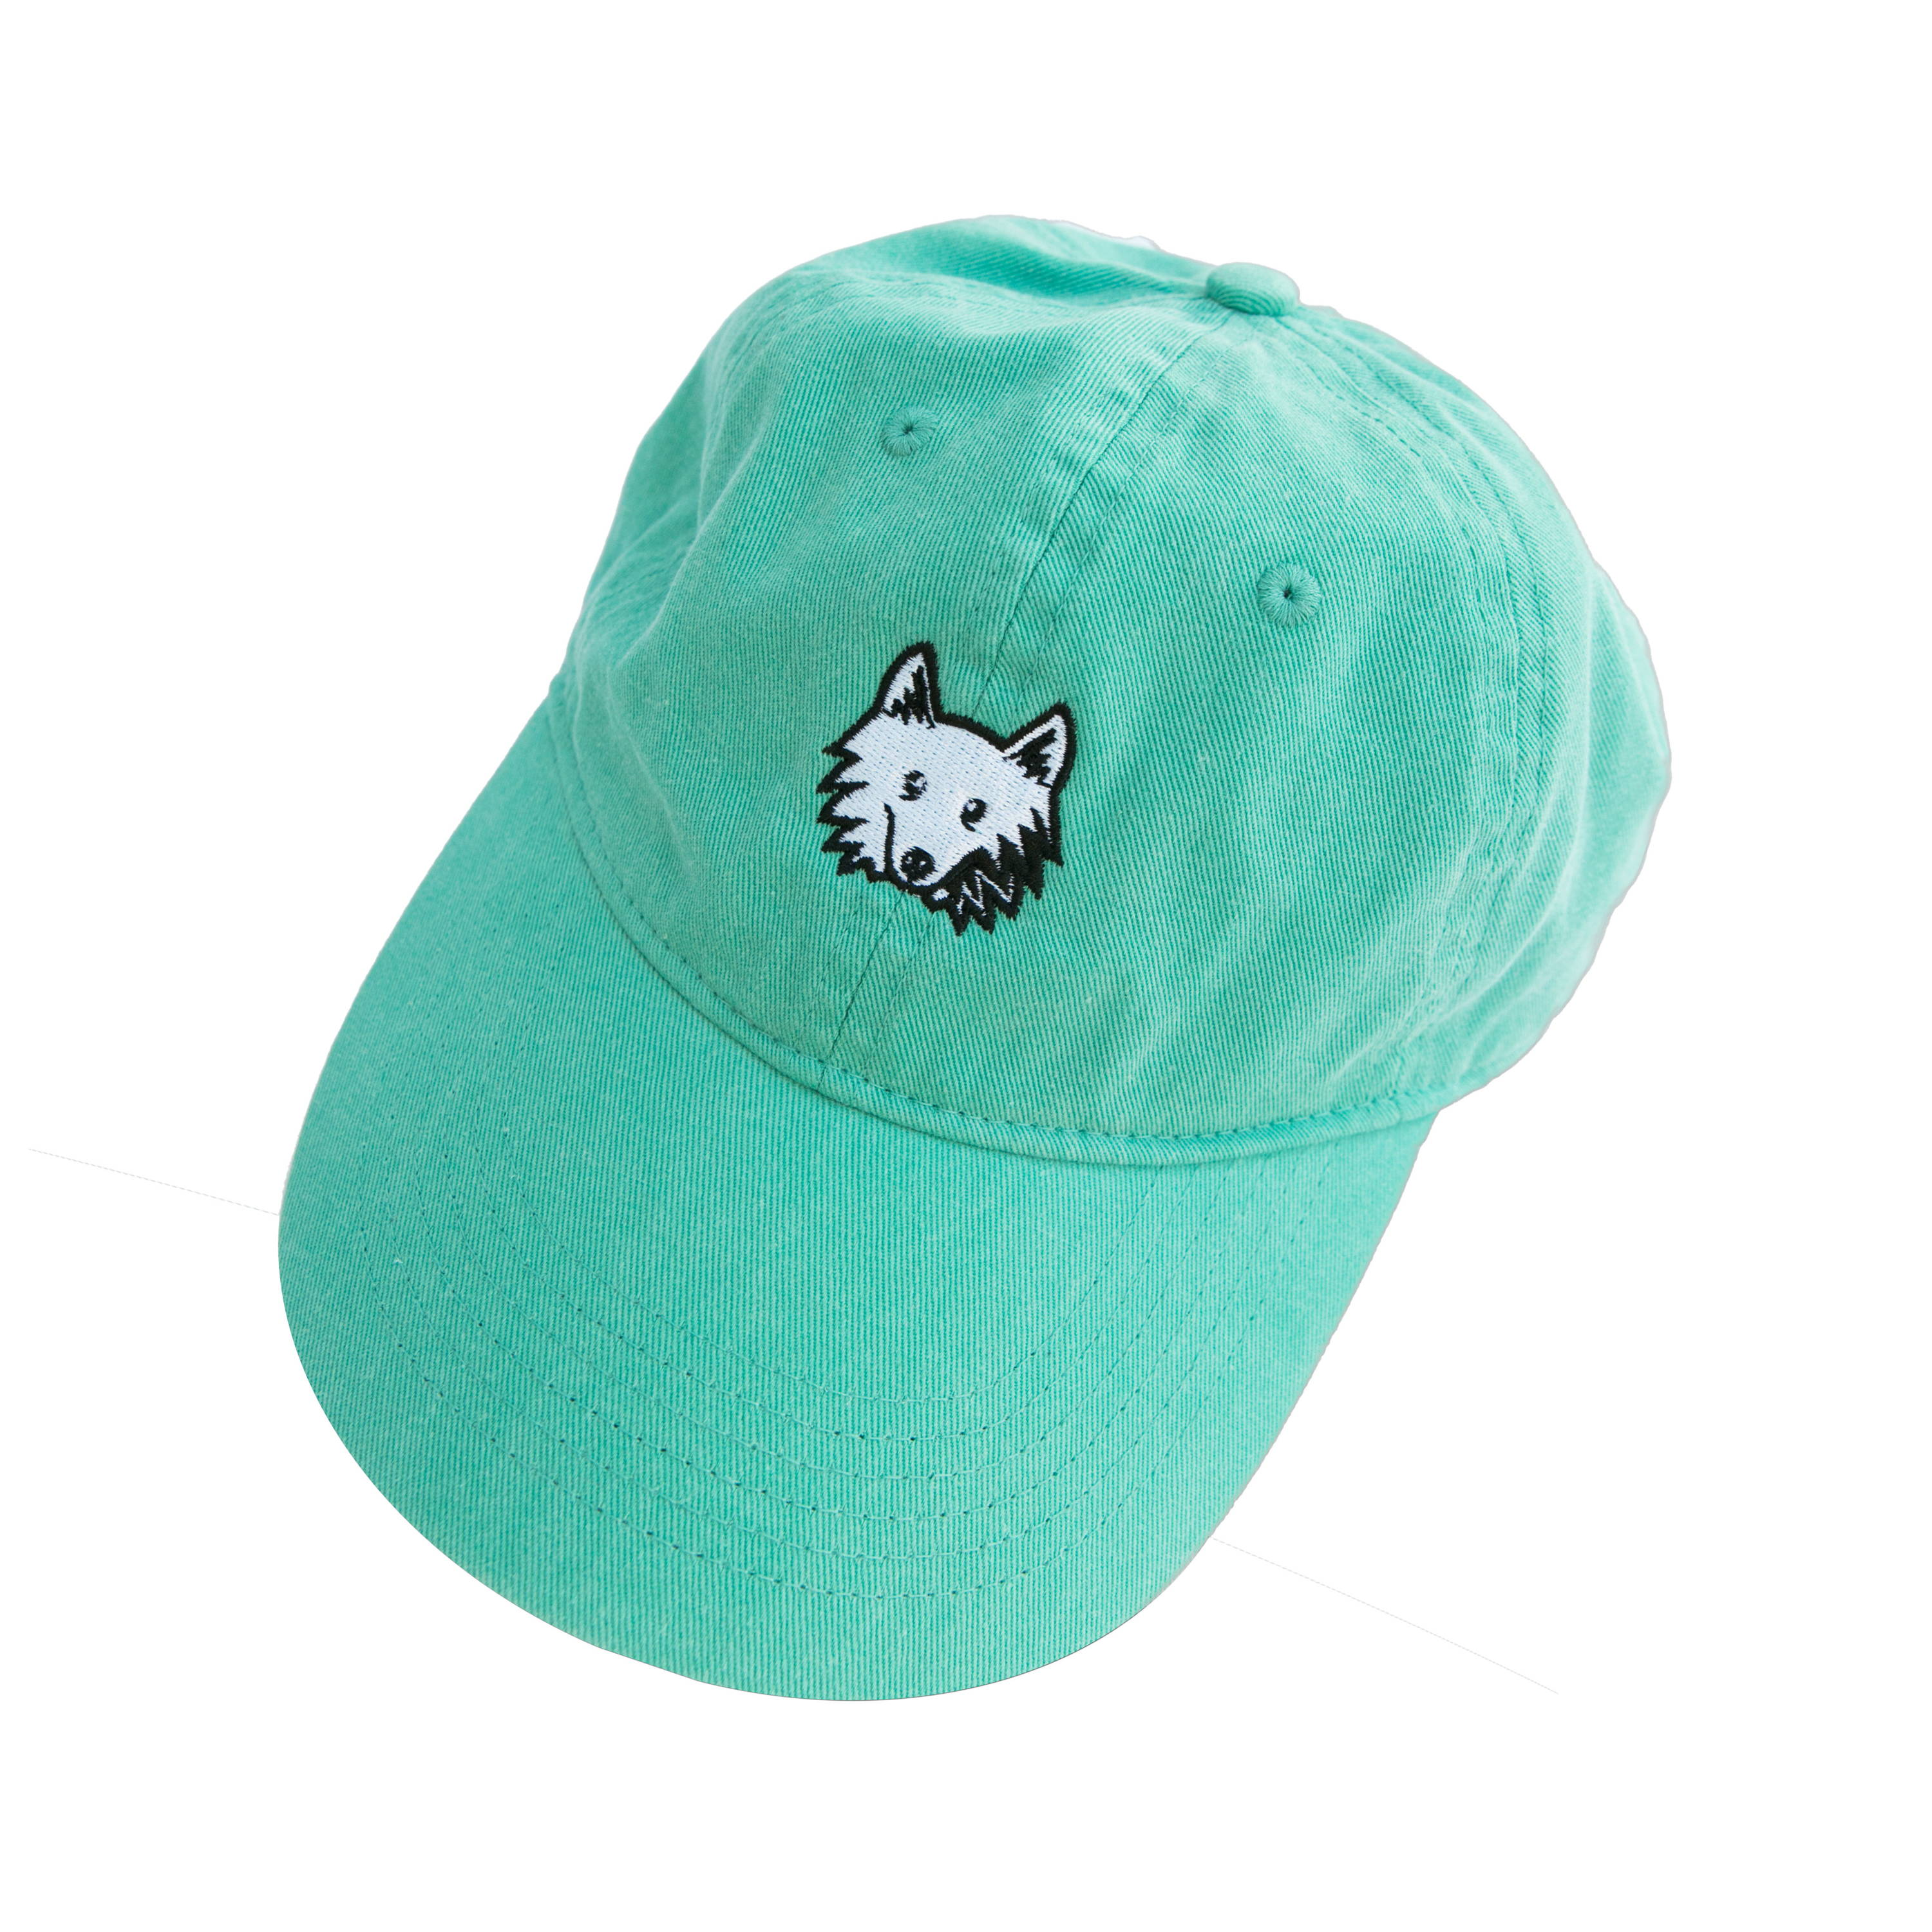 Soft, embroidered classic caps (dad hats)